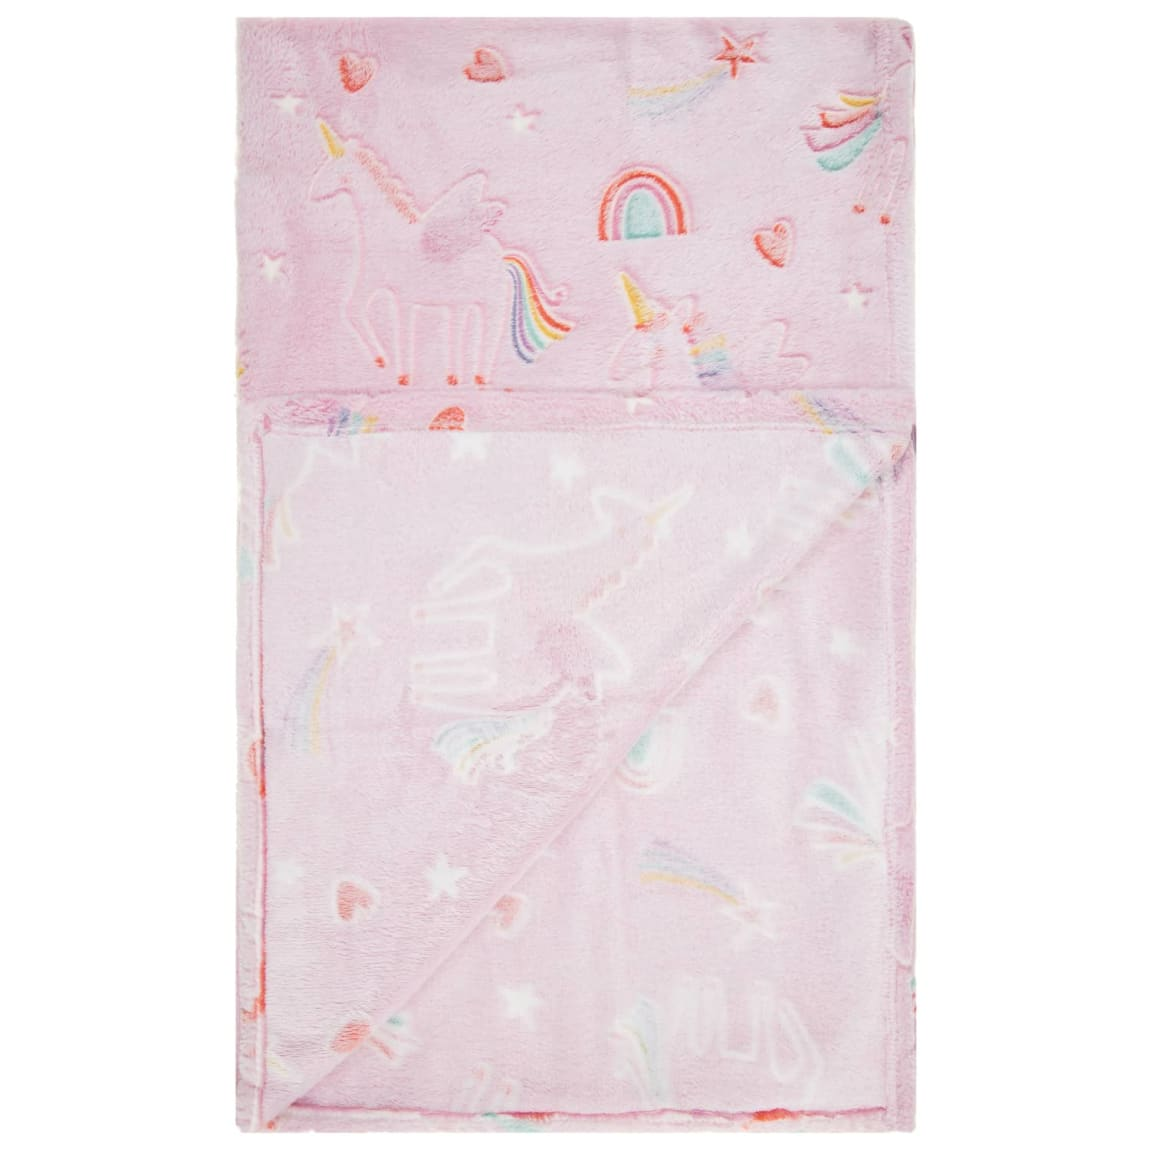 Glow in the Dark Throw - Unicorn